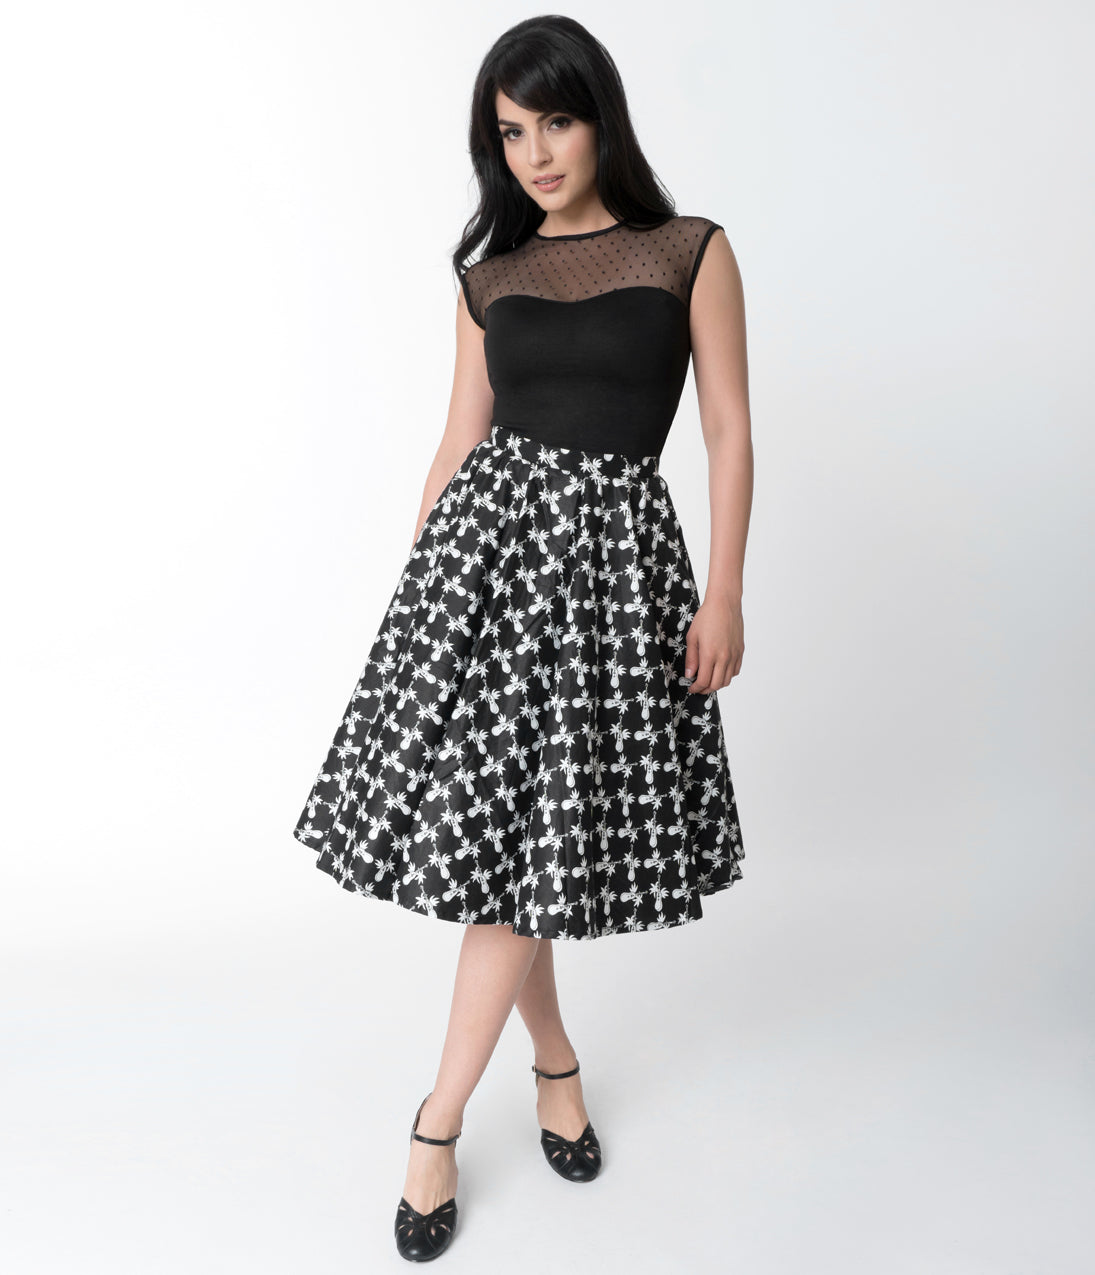 Rockabilly Dresses | Rockabilly Clothing | Viva Las Vegas Vintage Style Black  White Ukulele Print Cotton Circle Skirt $42.00 AT vintagedancer.com